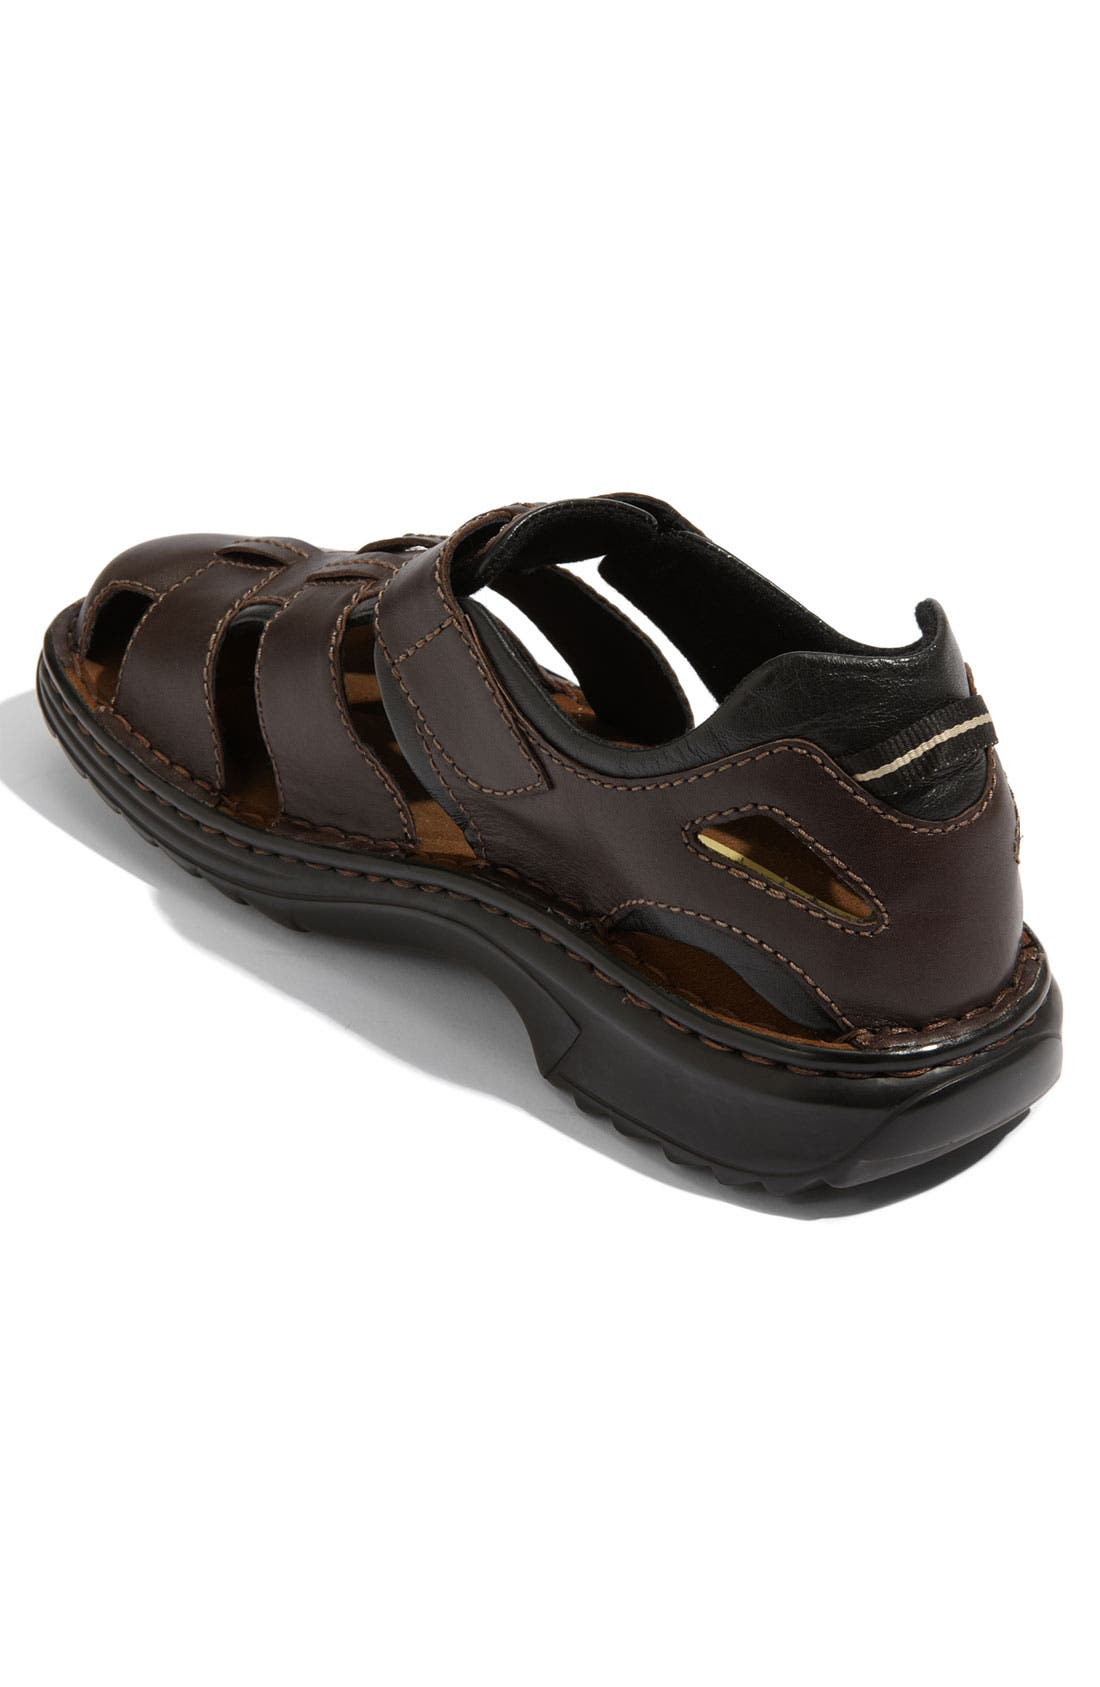 Alternate Image 2  - Josef Seibel 'Jeremy' Sandal (Men)